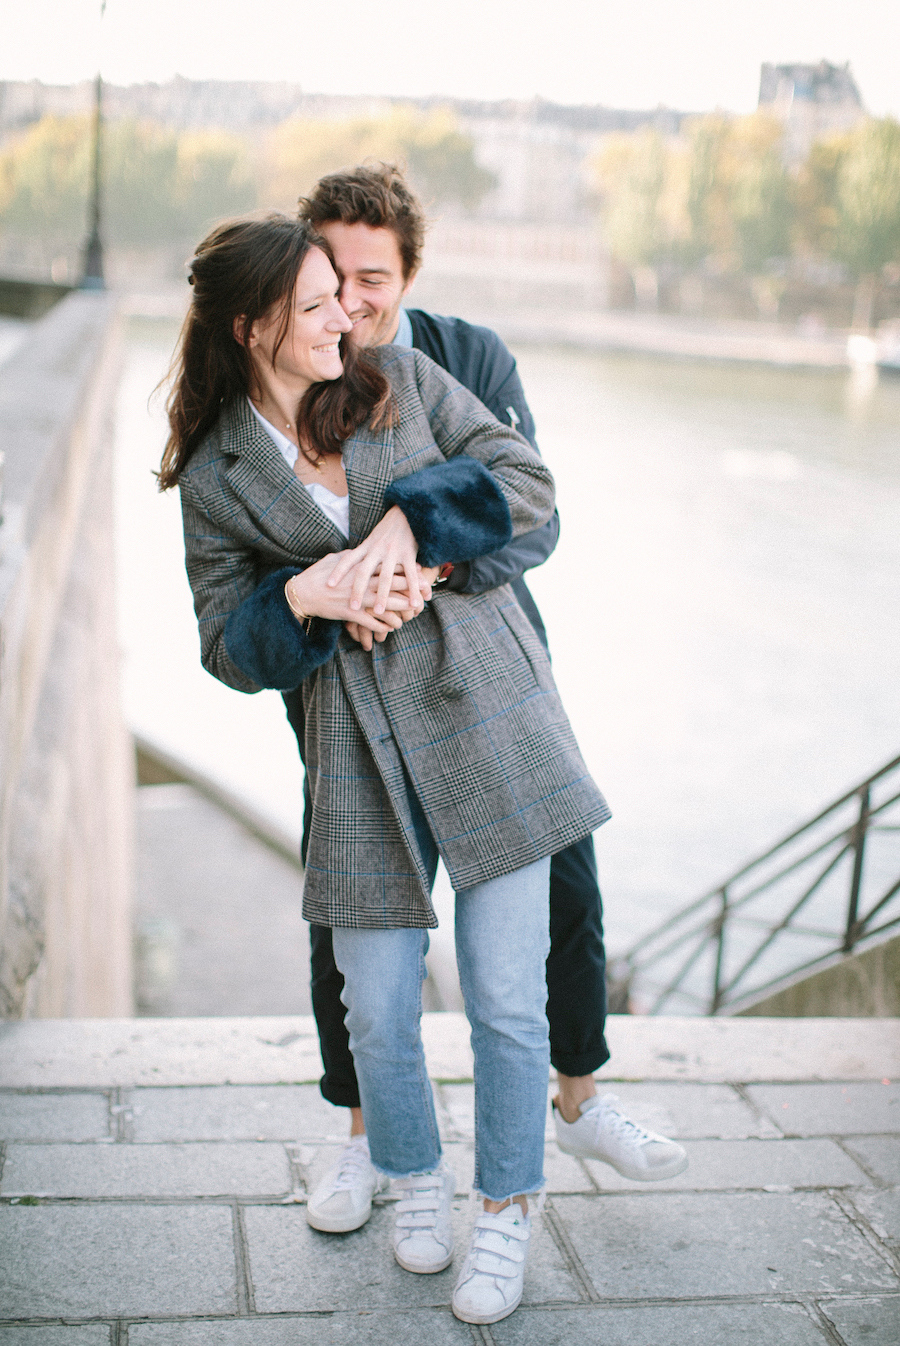 saya-photography-pre-wedding-couple-engagement-paris-ile-saint-louis-30.jpg